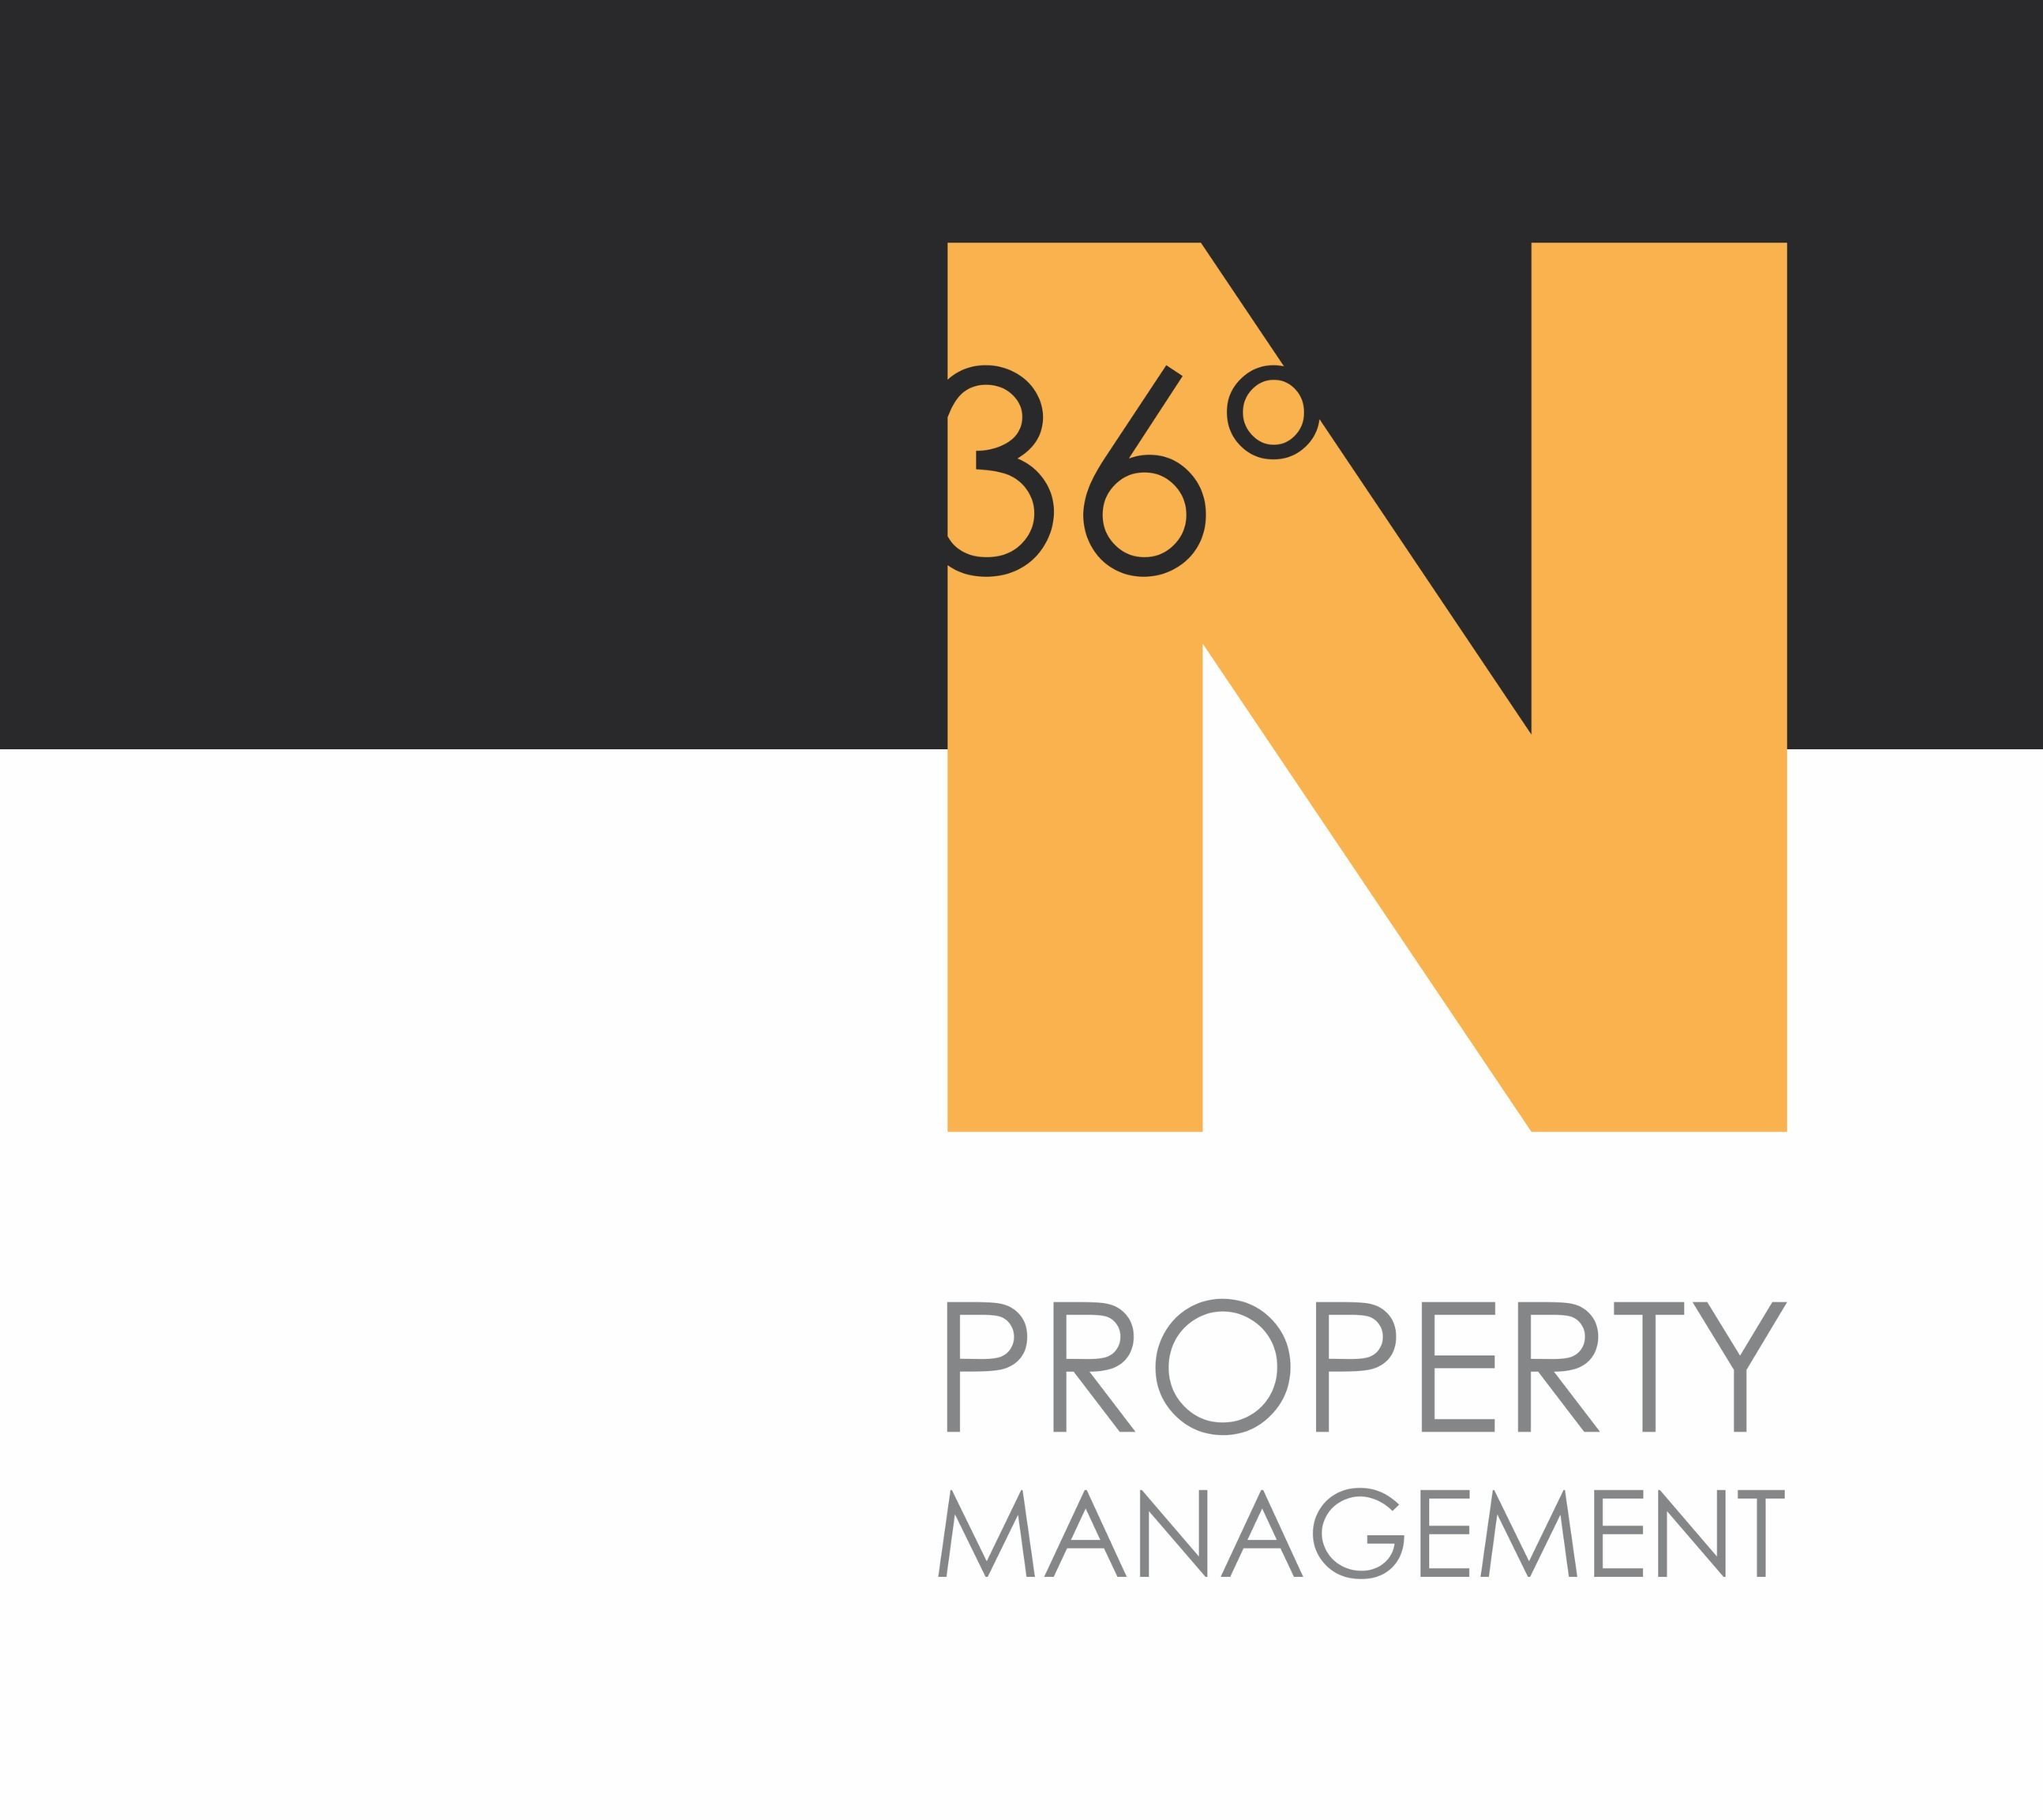 36 North Property Management